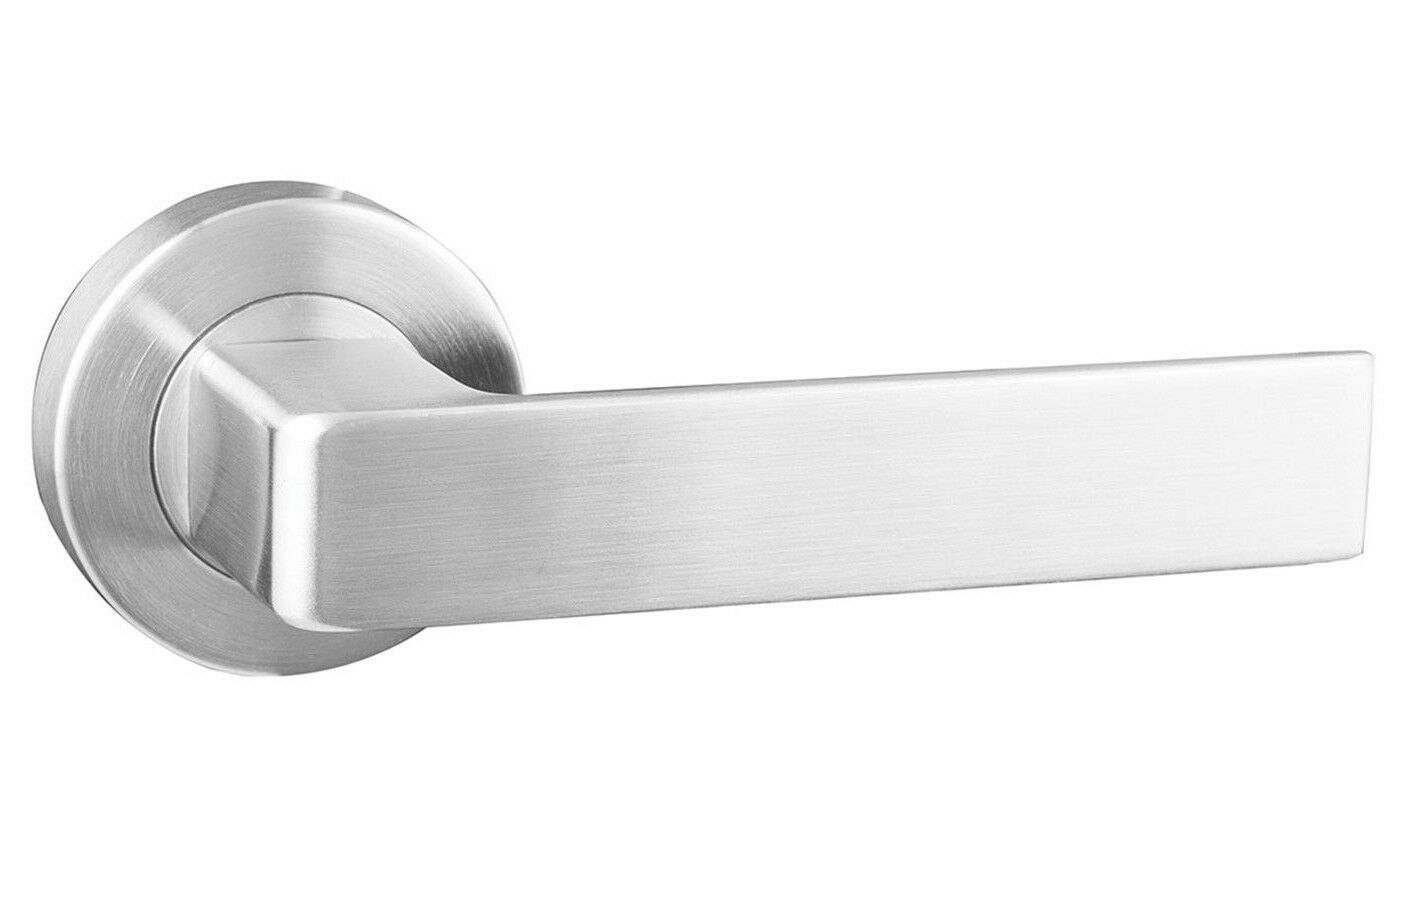 Schlage 7000-SERIES ANGELO PASSAGE LEVER Satin Stainless Steel USA Brand